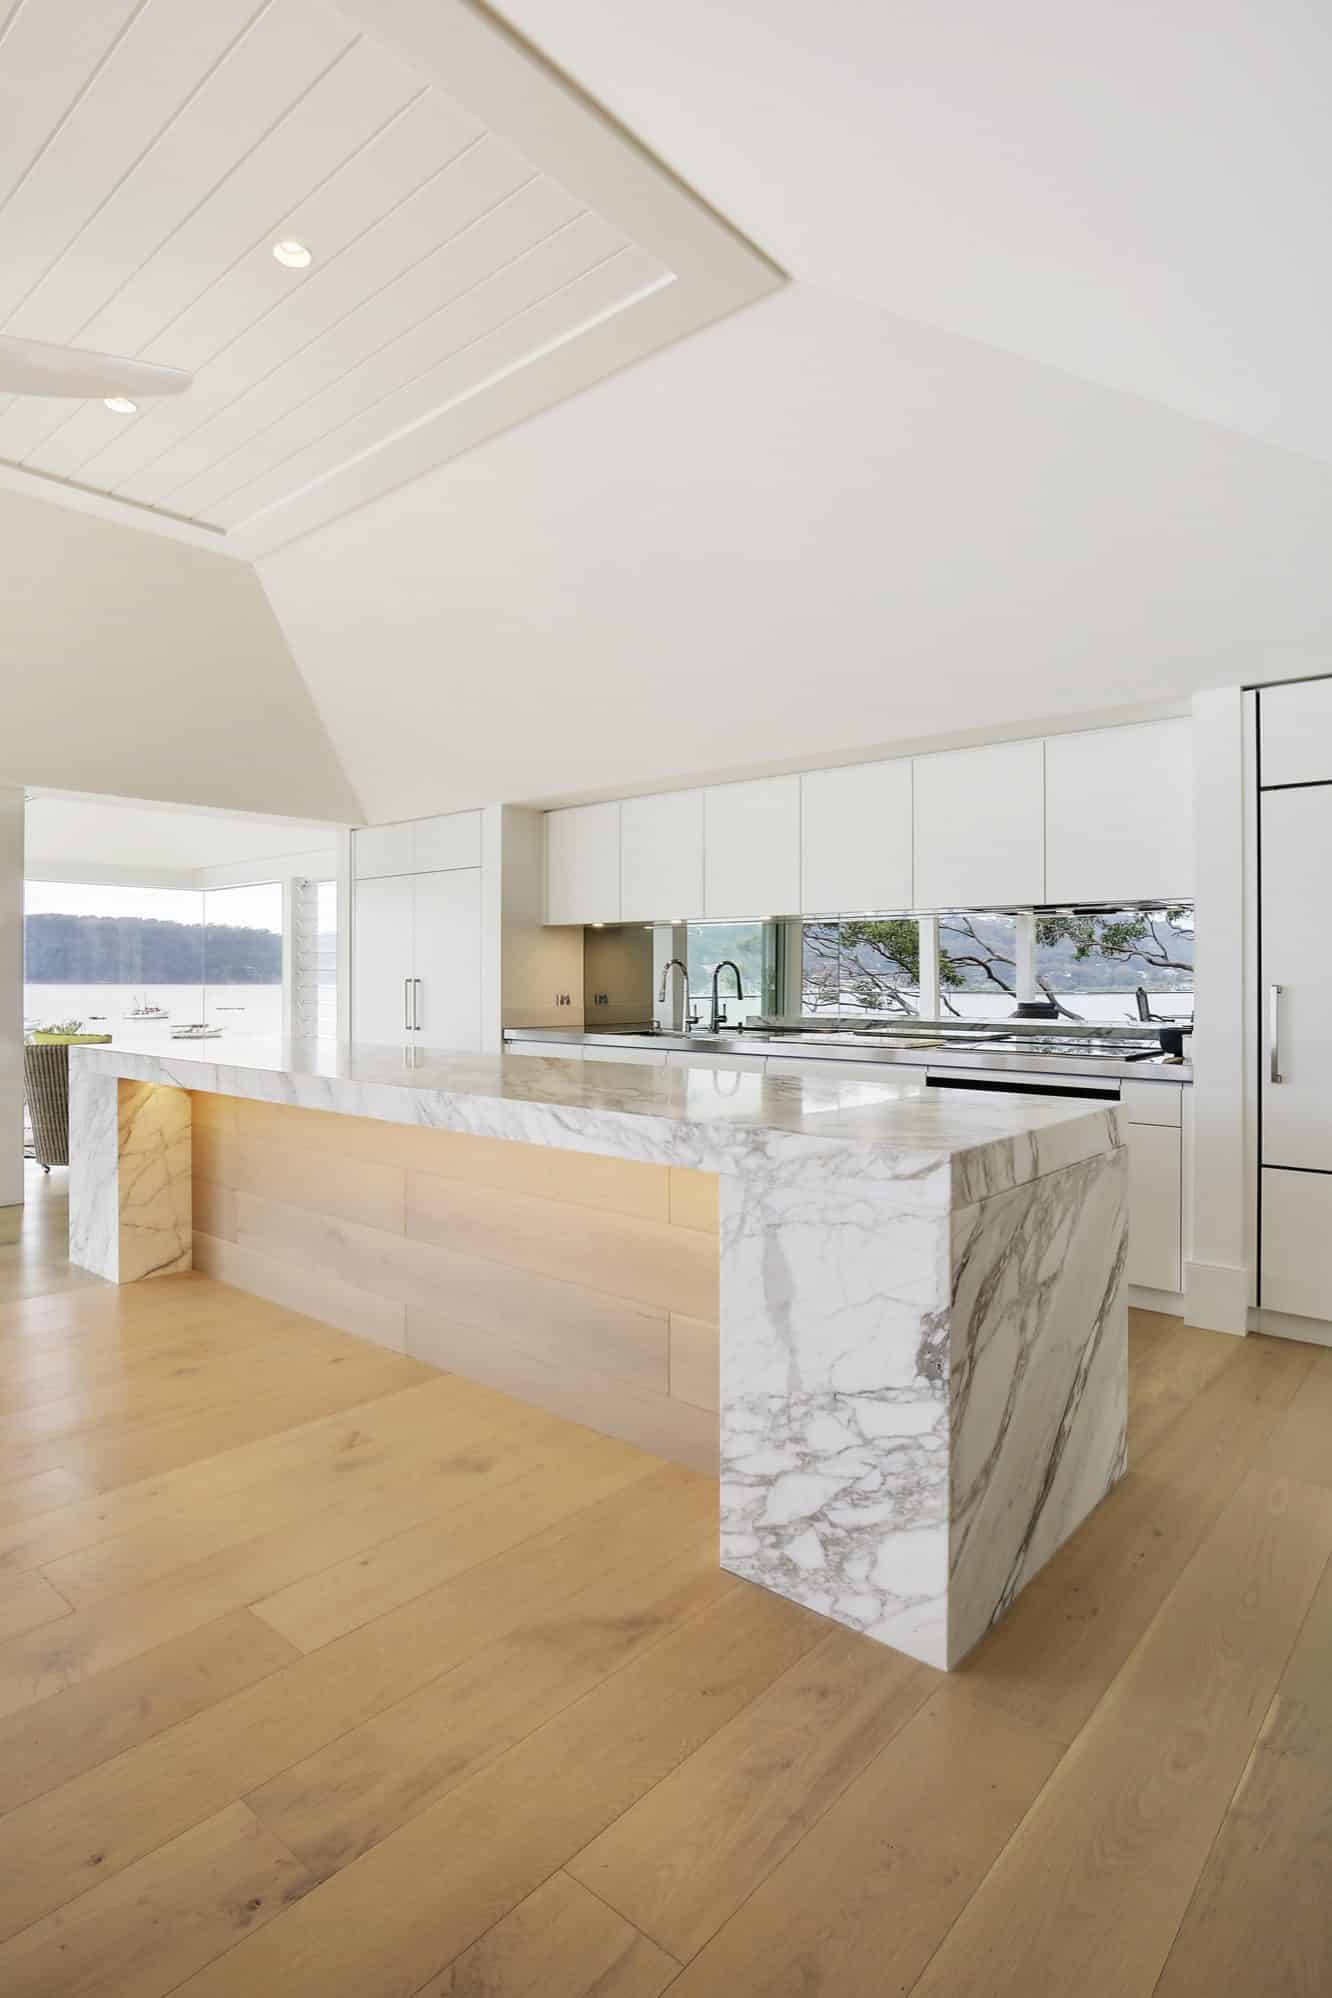 A striking kitchen island of calacatta marble